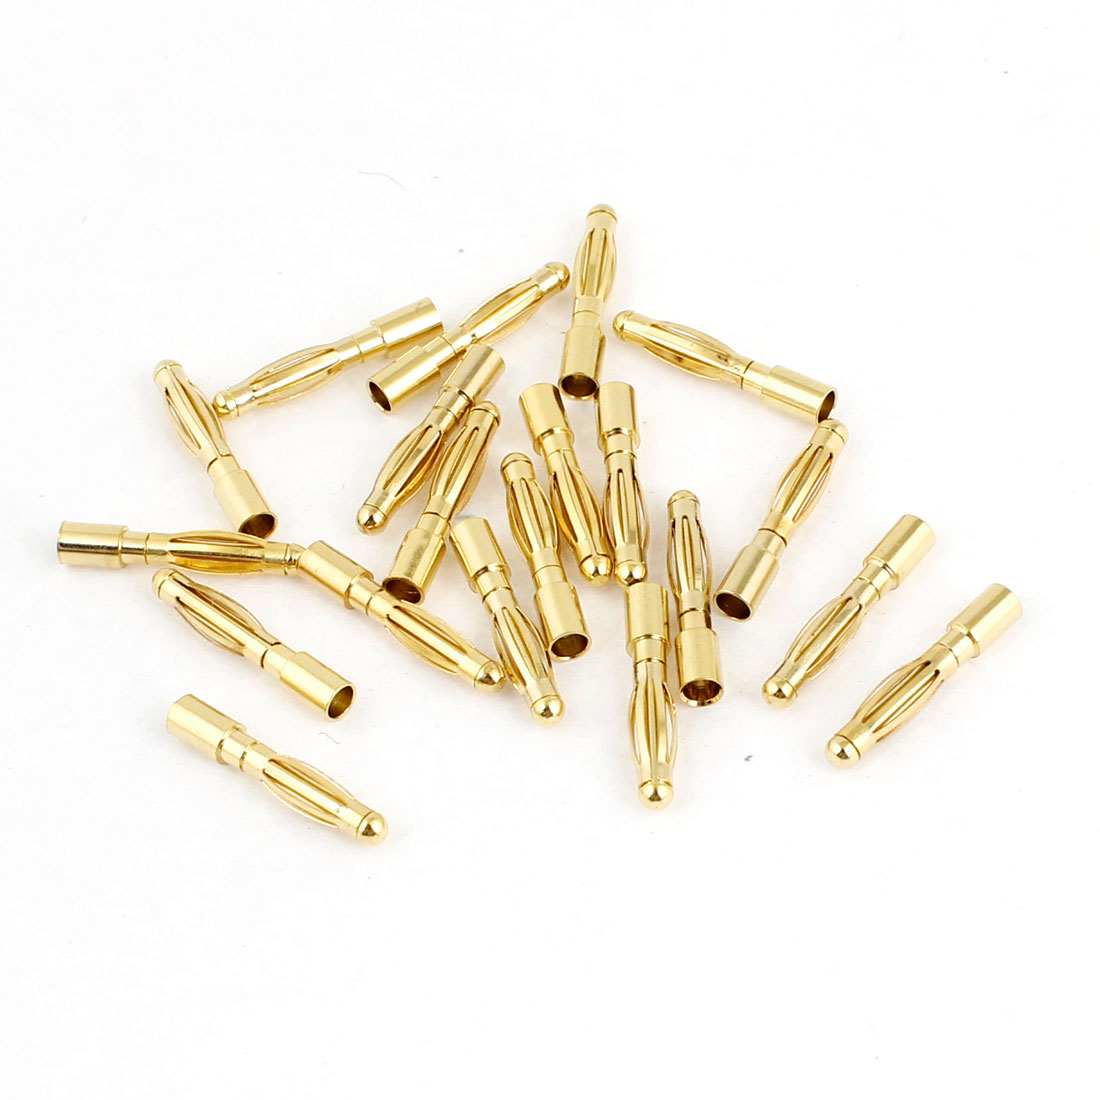 2mm Inner Diameter Male Banana Connector Replacement 20 Pcs